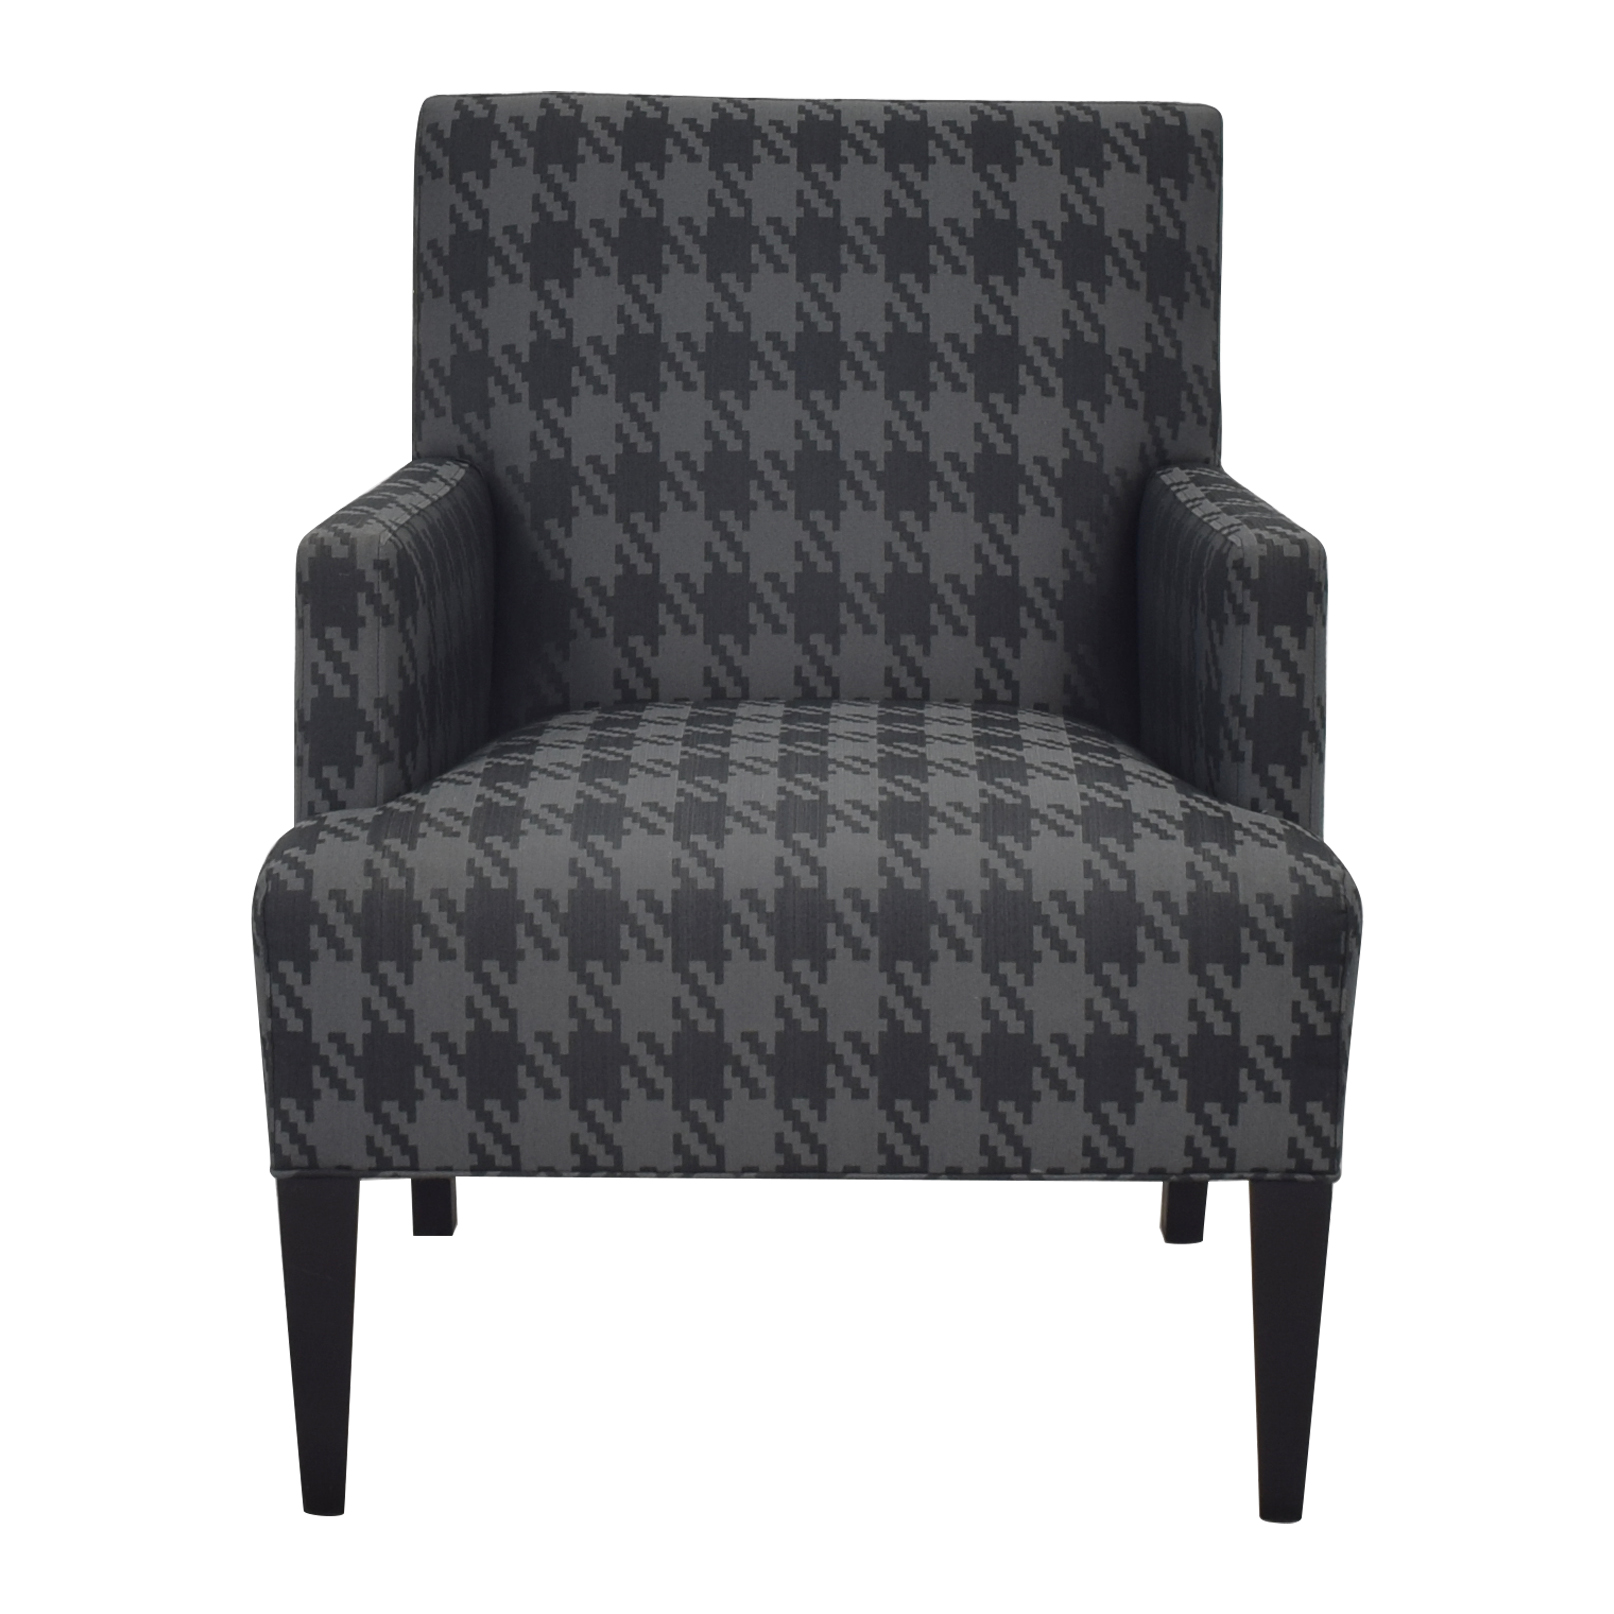 buy Crate & Barrel Armchair Crate & Barrel Chairs